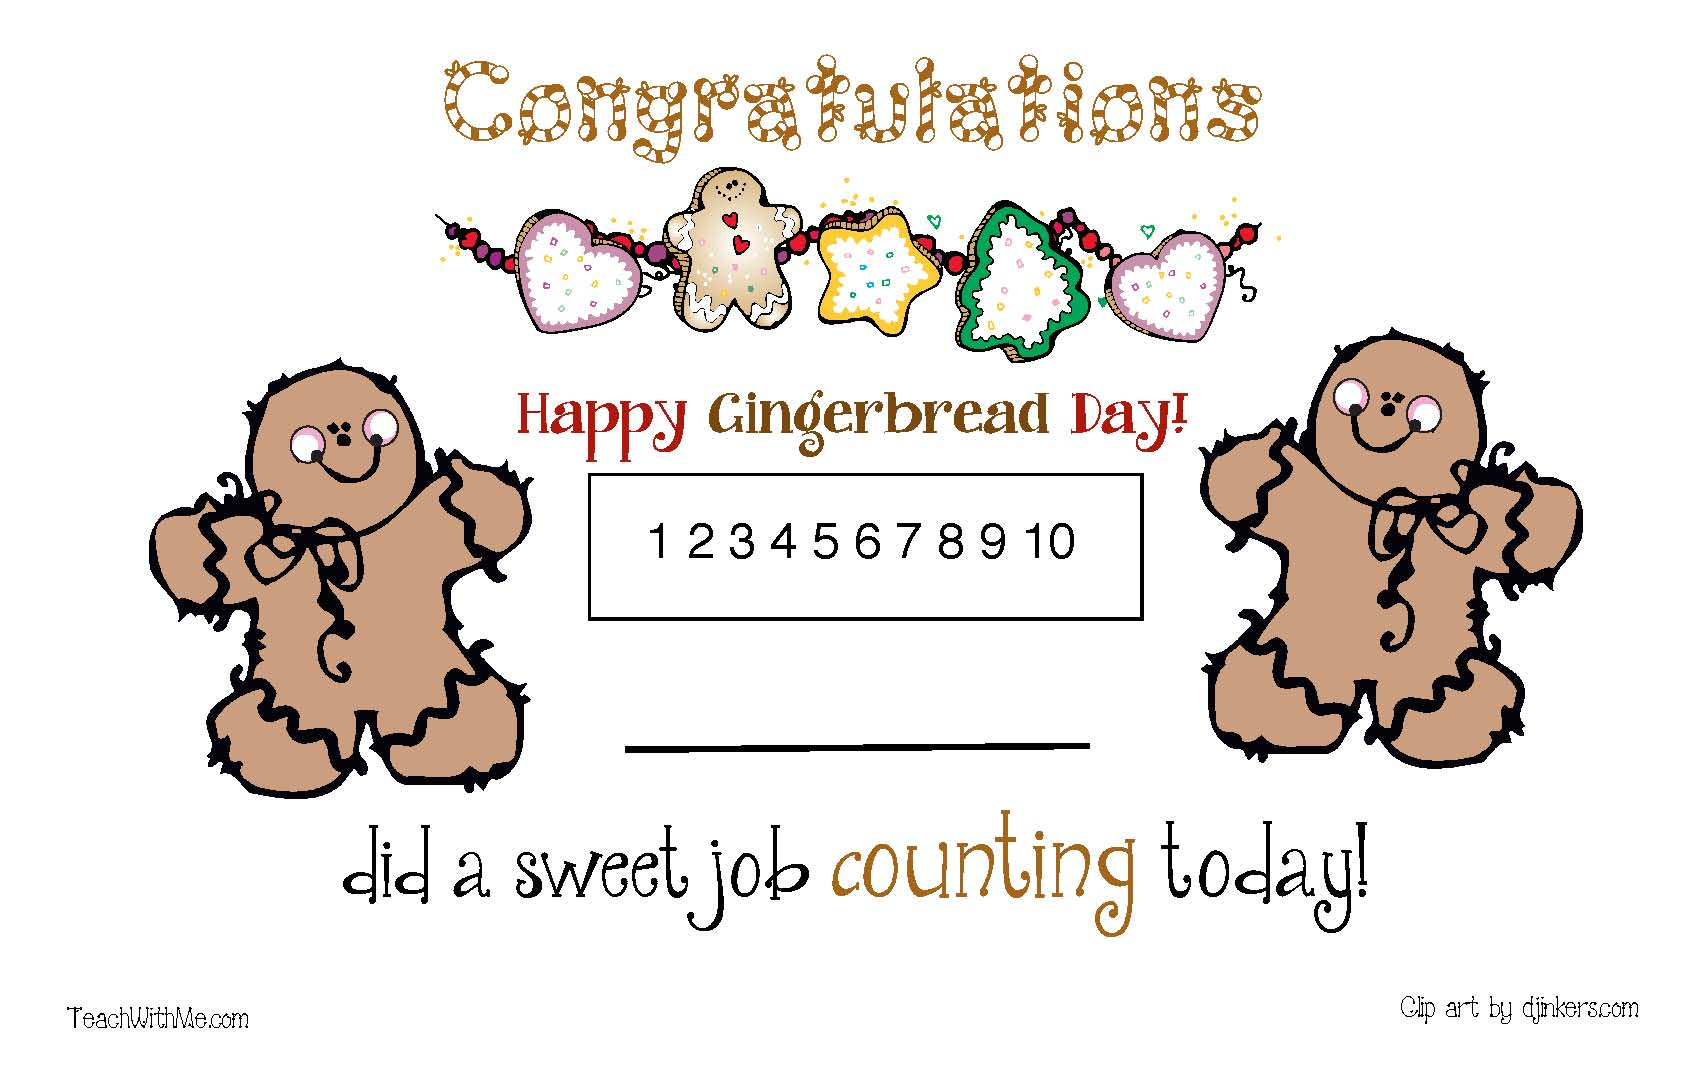 gingerbread activities, skip counting activities, 10 frames, 10 frames templates, gingerbread 10 frames, gingerbread class books, graphing gingerbread, graphing if students like gingerbread, gingerbread bite graph,gingerbread centers, gingerbread math, gingerbread number cards, gingerbread lessons, common core gingerbread, gingerbread games, gingerbread certificates, skip counting with gingerbread, gingerbread bookmarks